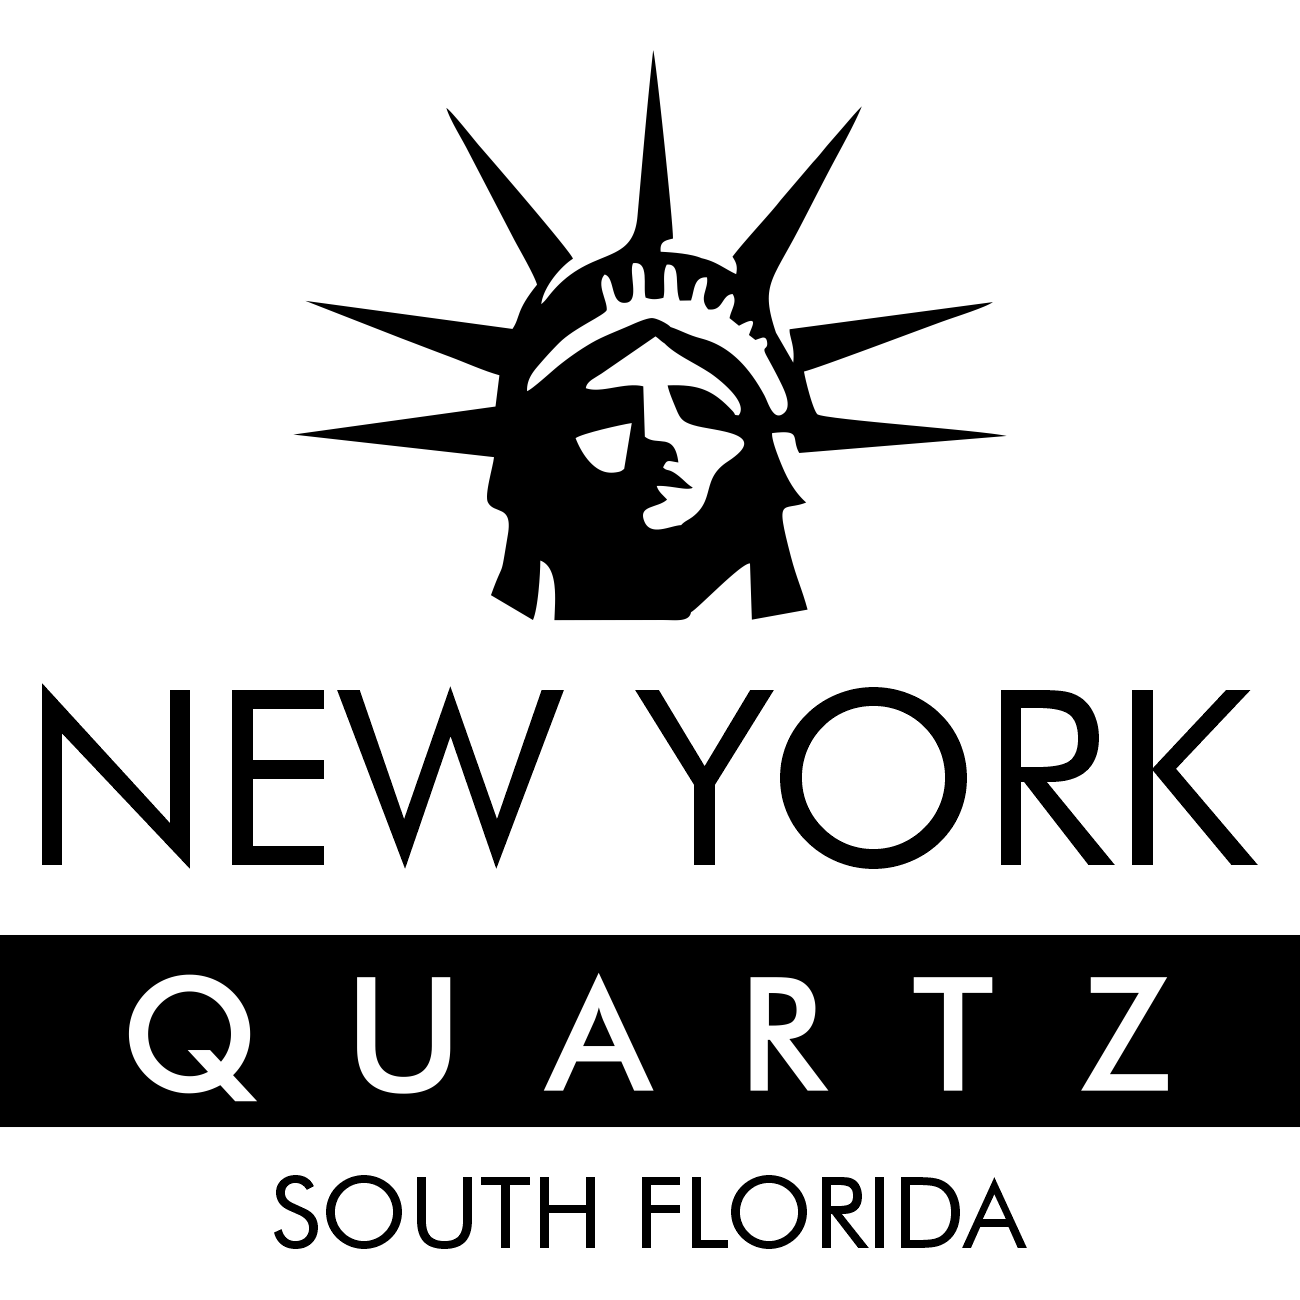 New York Quartz